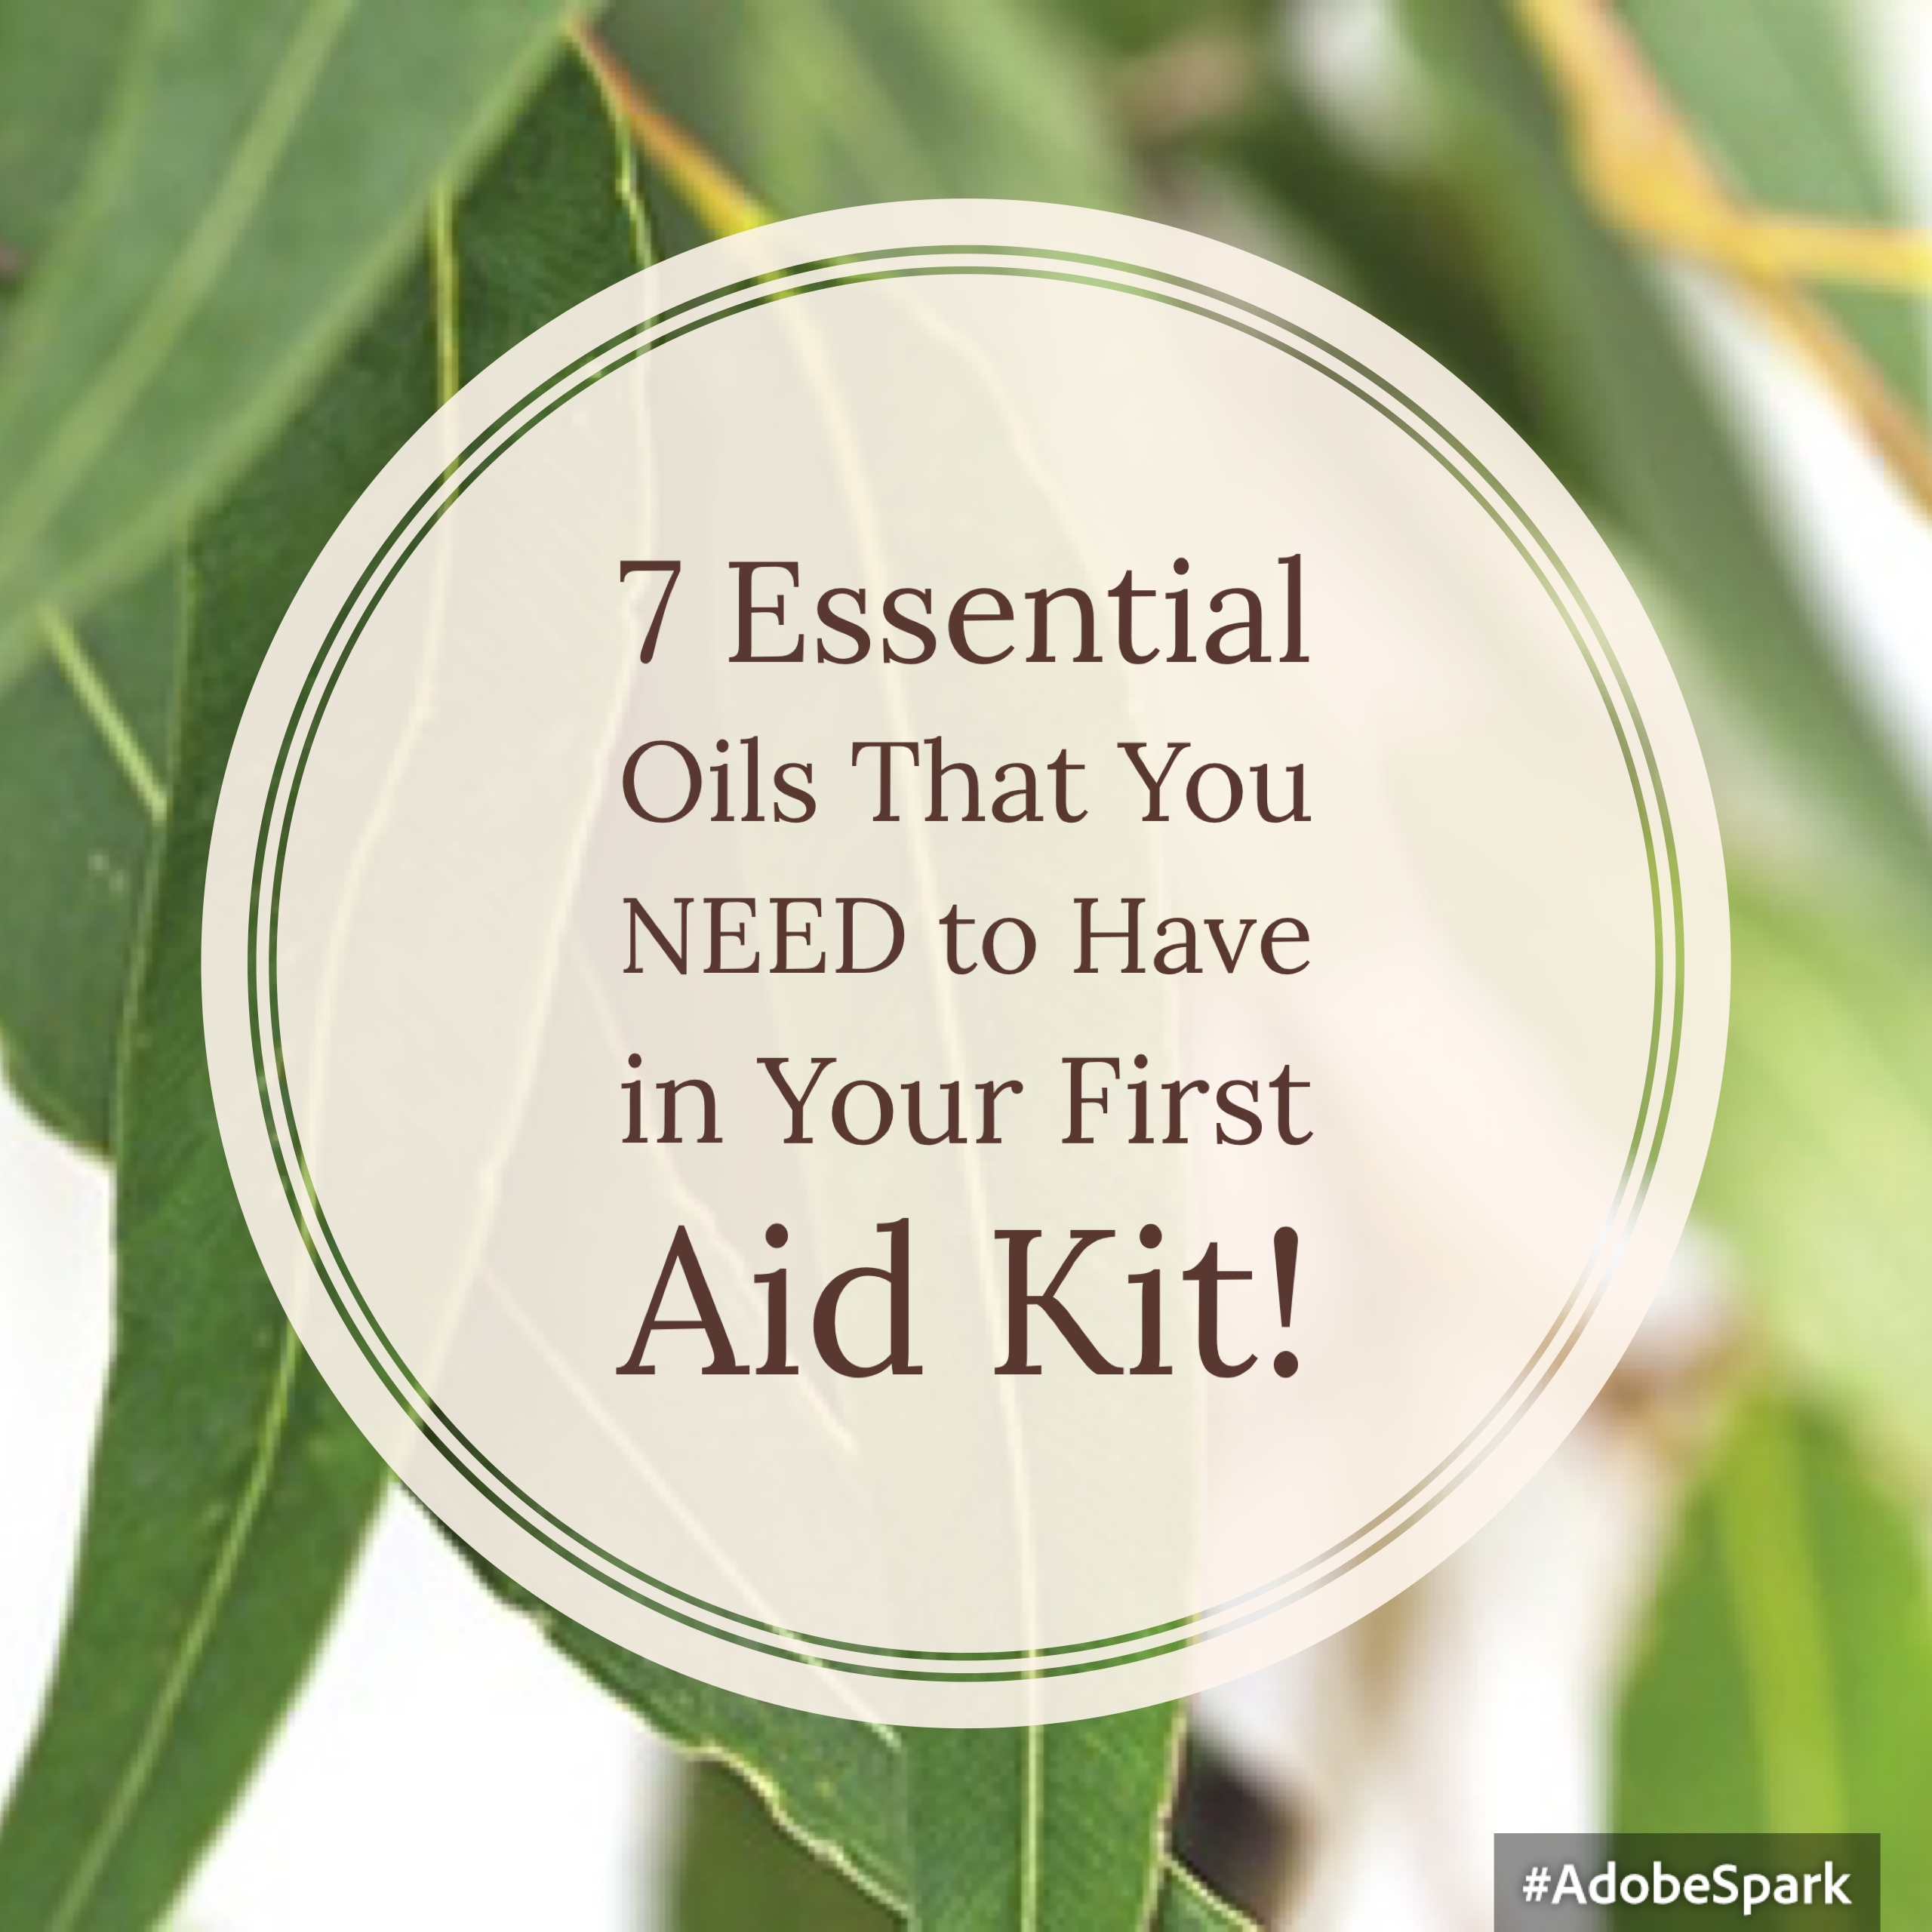 7 Essential Oils That You NEED to Have in Your First Aid Kit